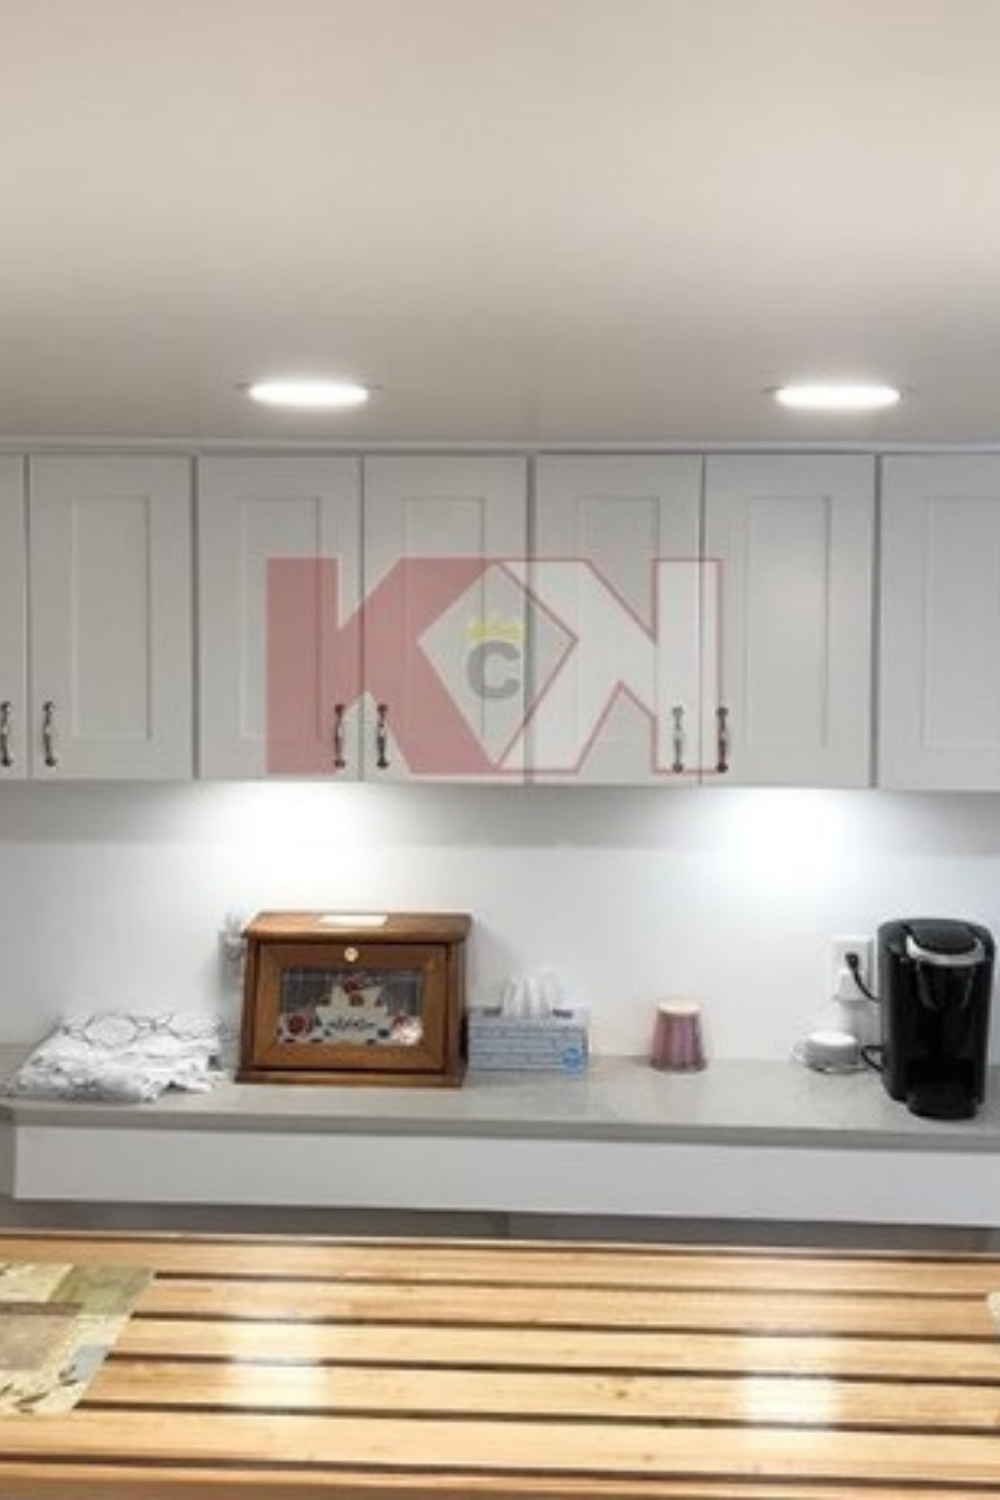 Ice White Shaker Cabinets In 2020 White Shaker Cabinets Cabinet Assembled Kitchen Cabinets